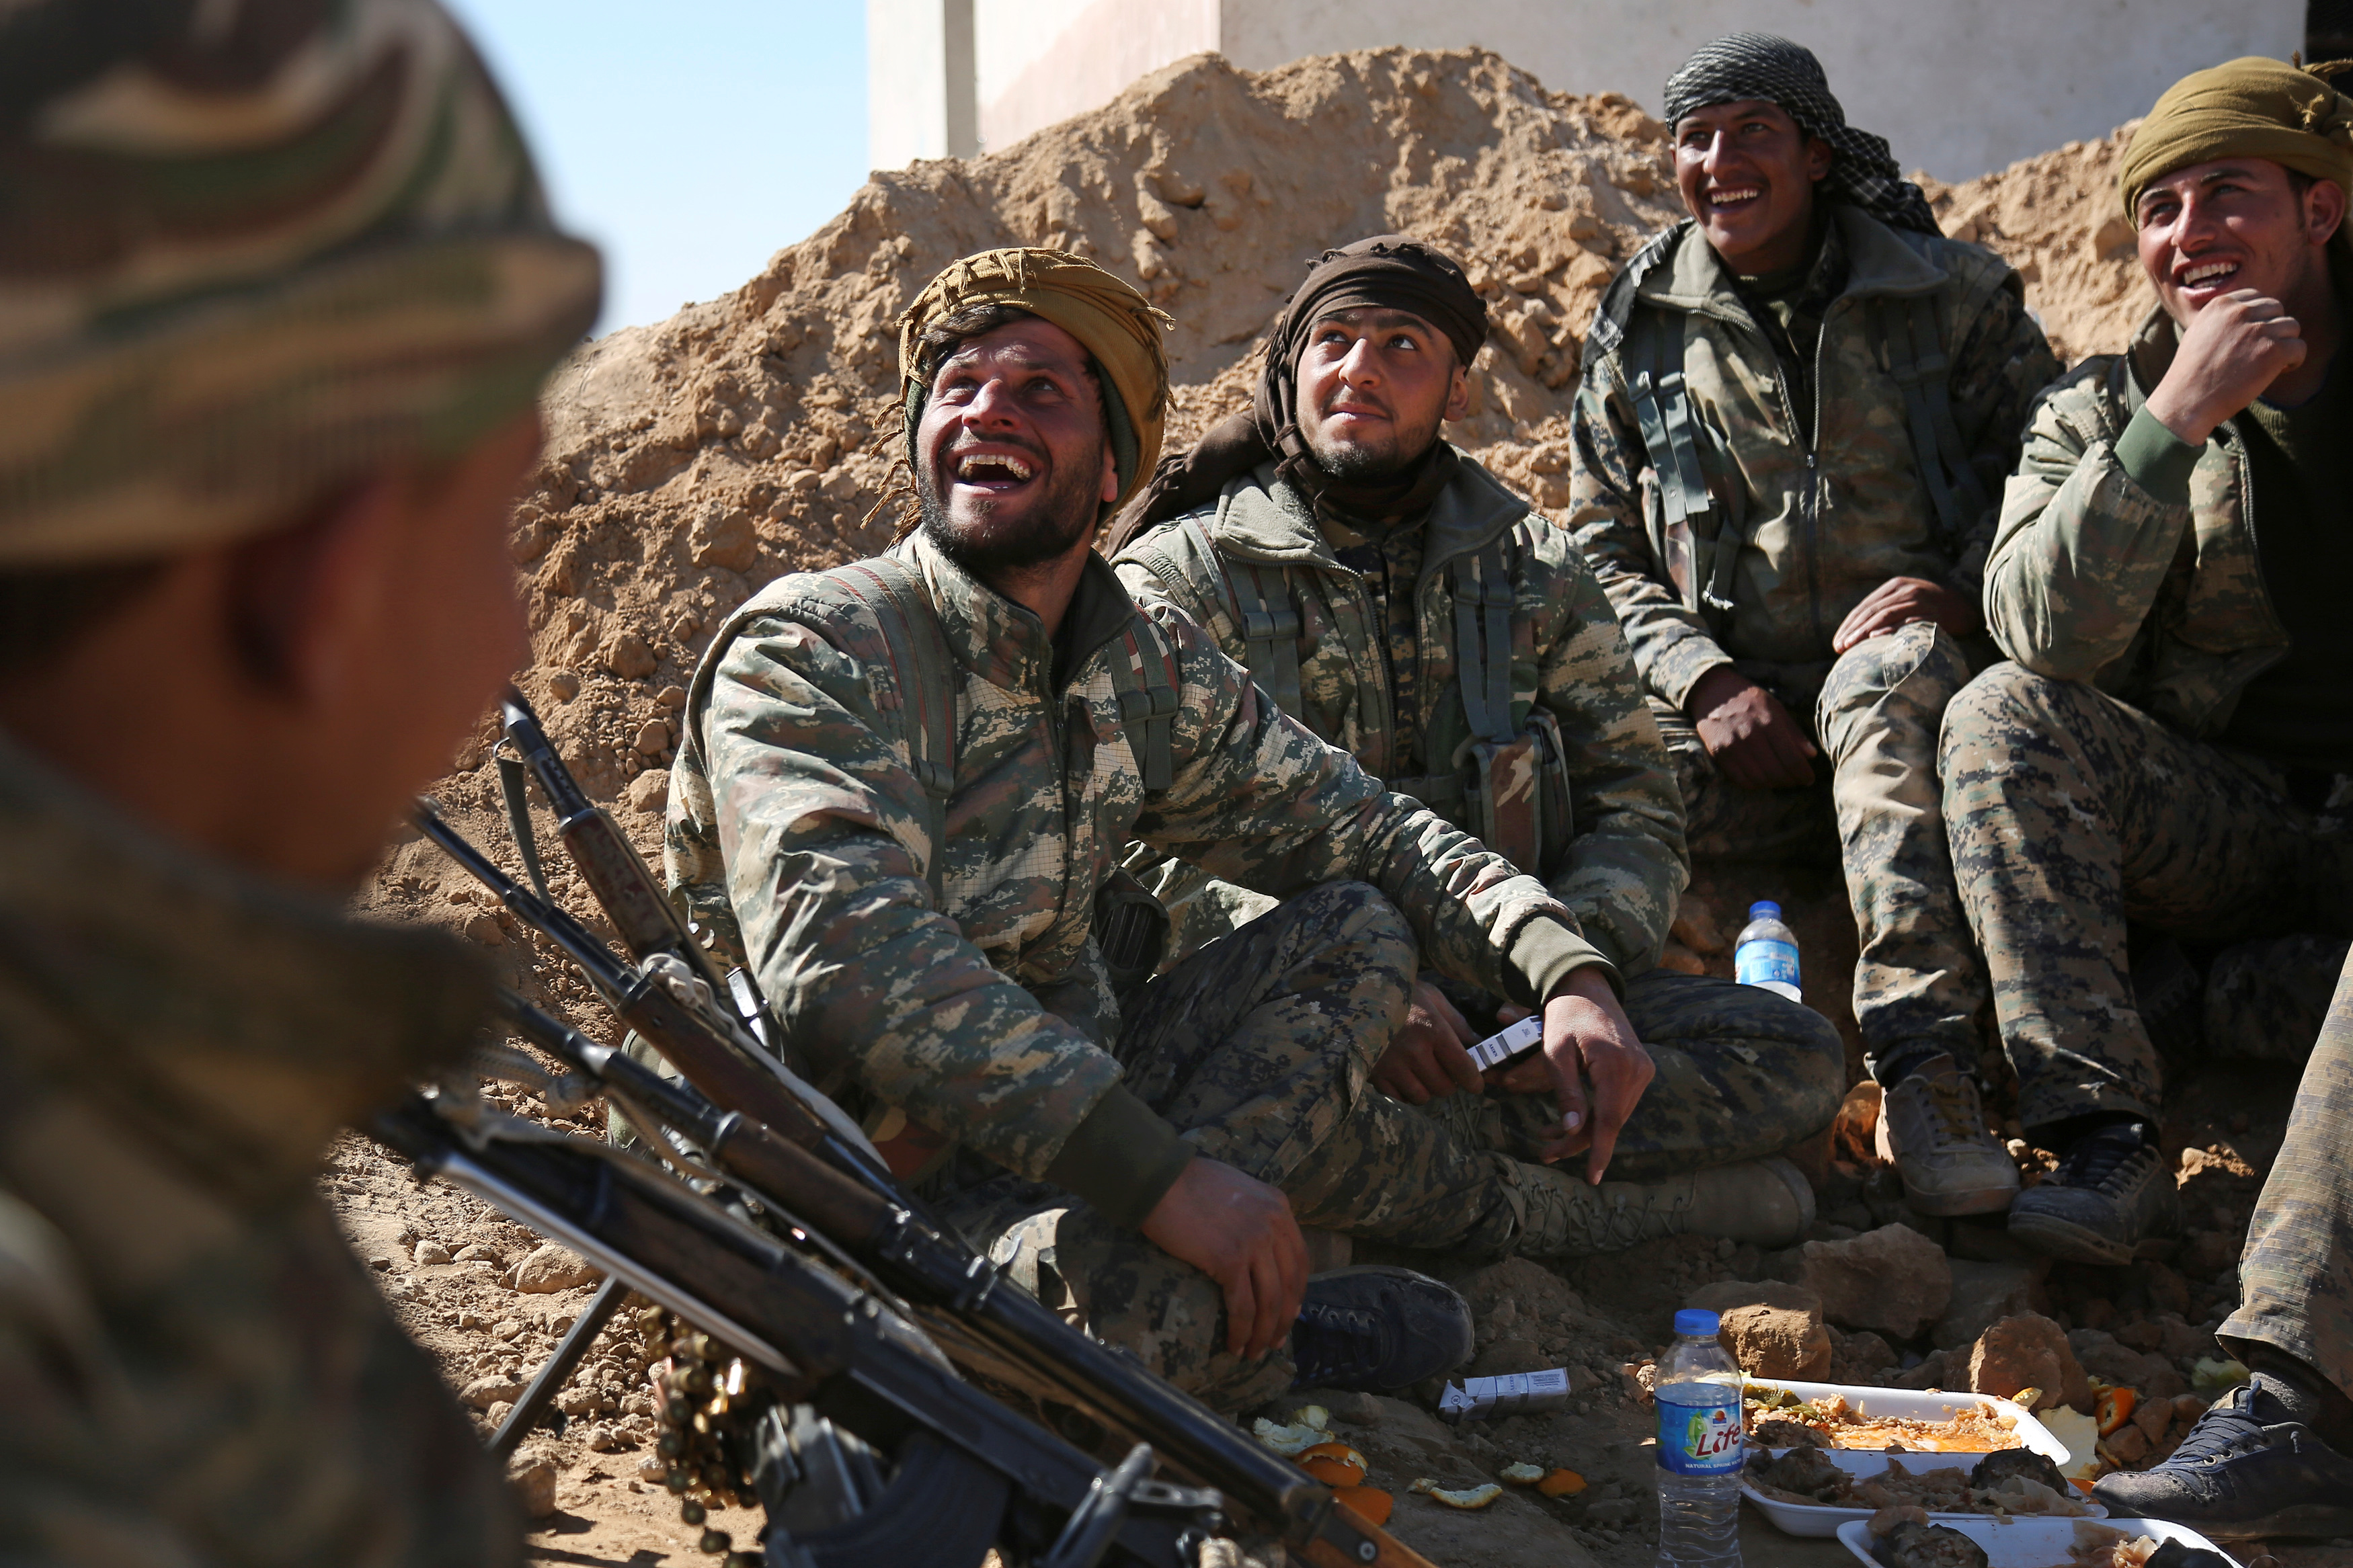 Could Turkey join forces with Russia in Syria?